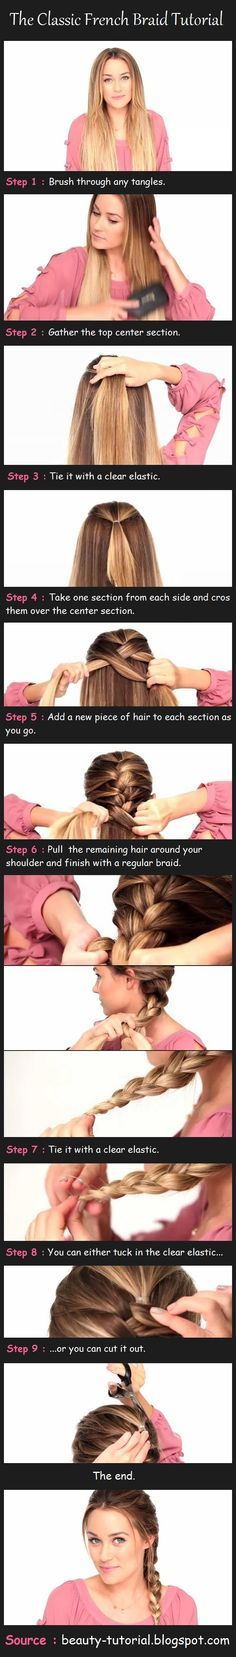 Step by step instructions on how to french braid your own hair.